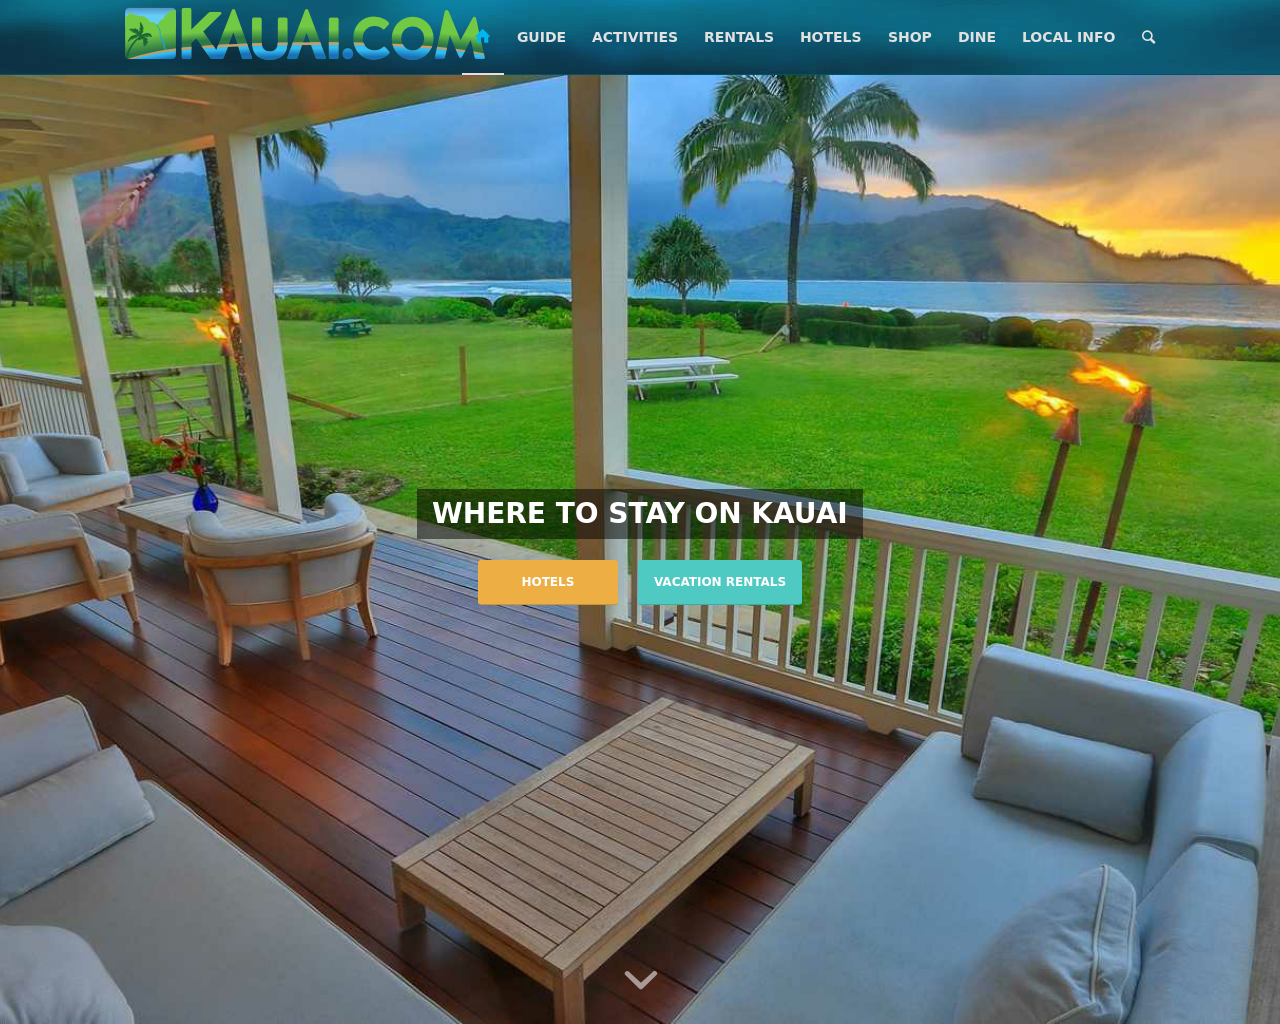 Kauai-Advertising-Reviews-Pricing